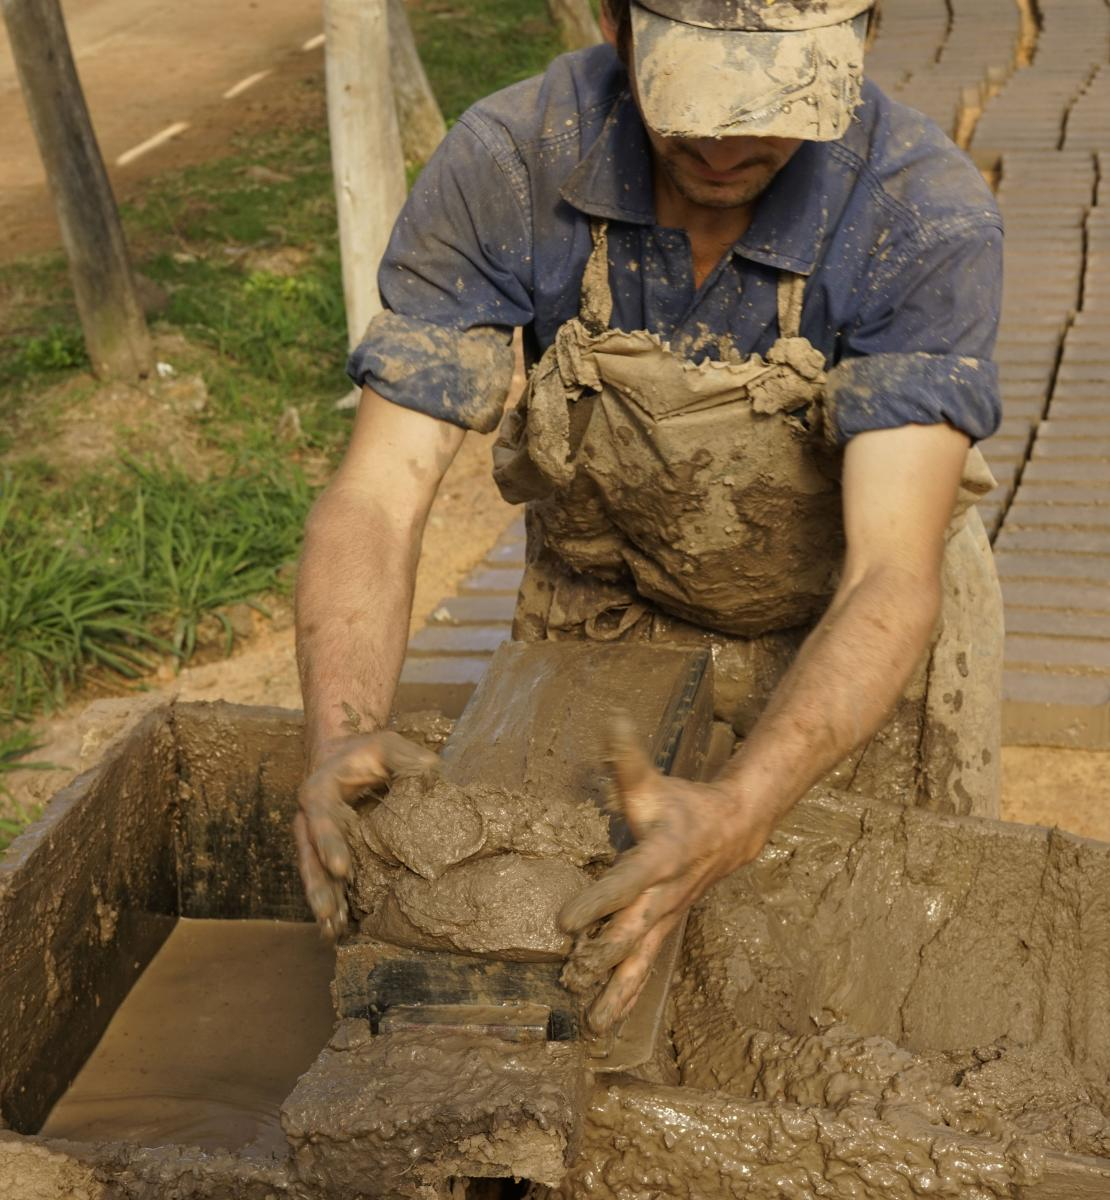 Photo shows a brickmaker molding bricks by hand.